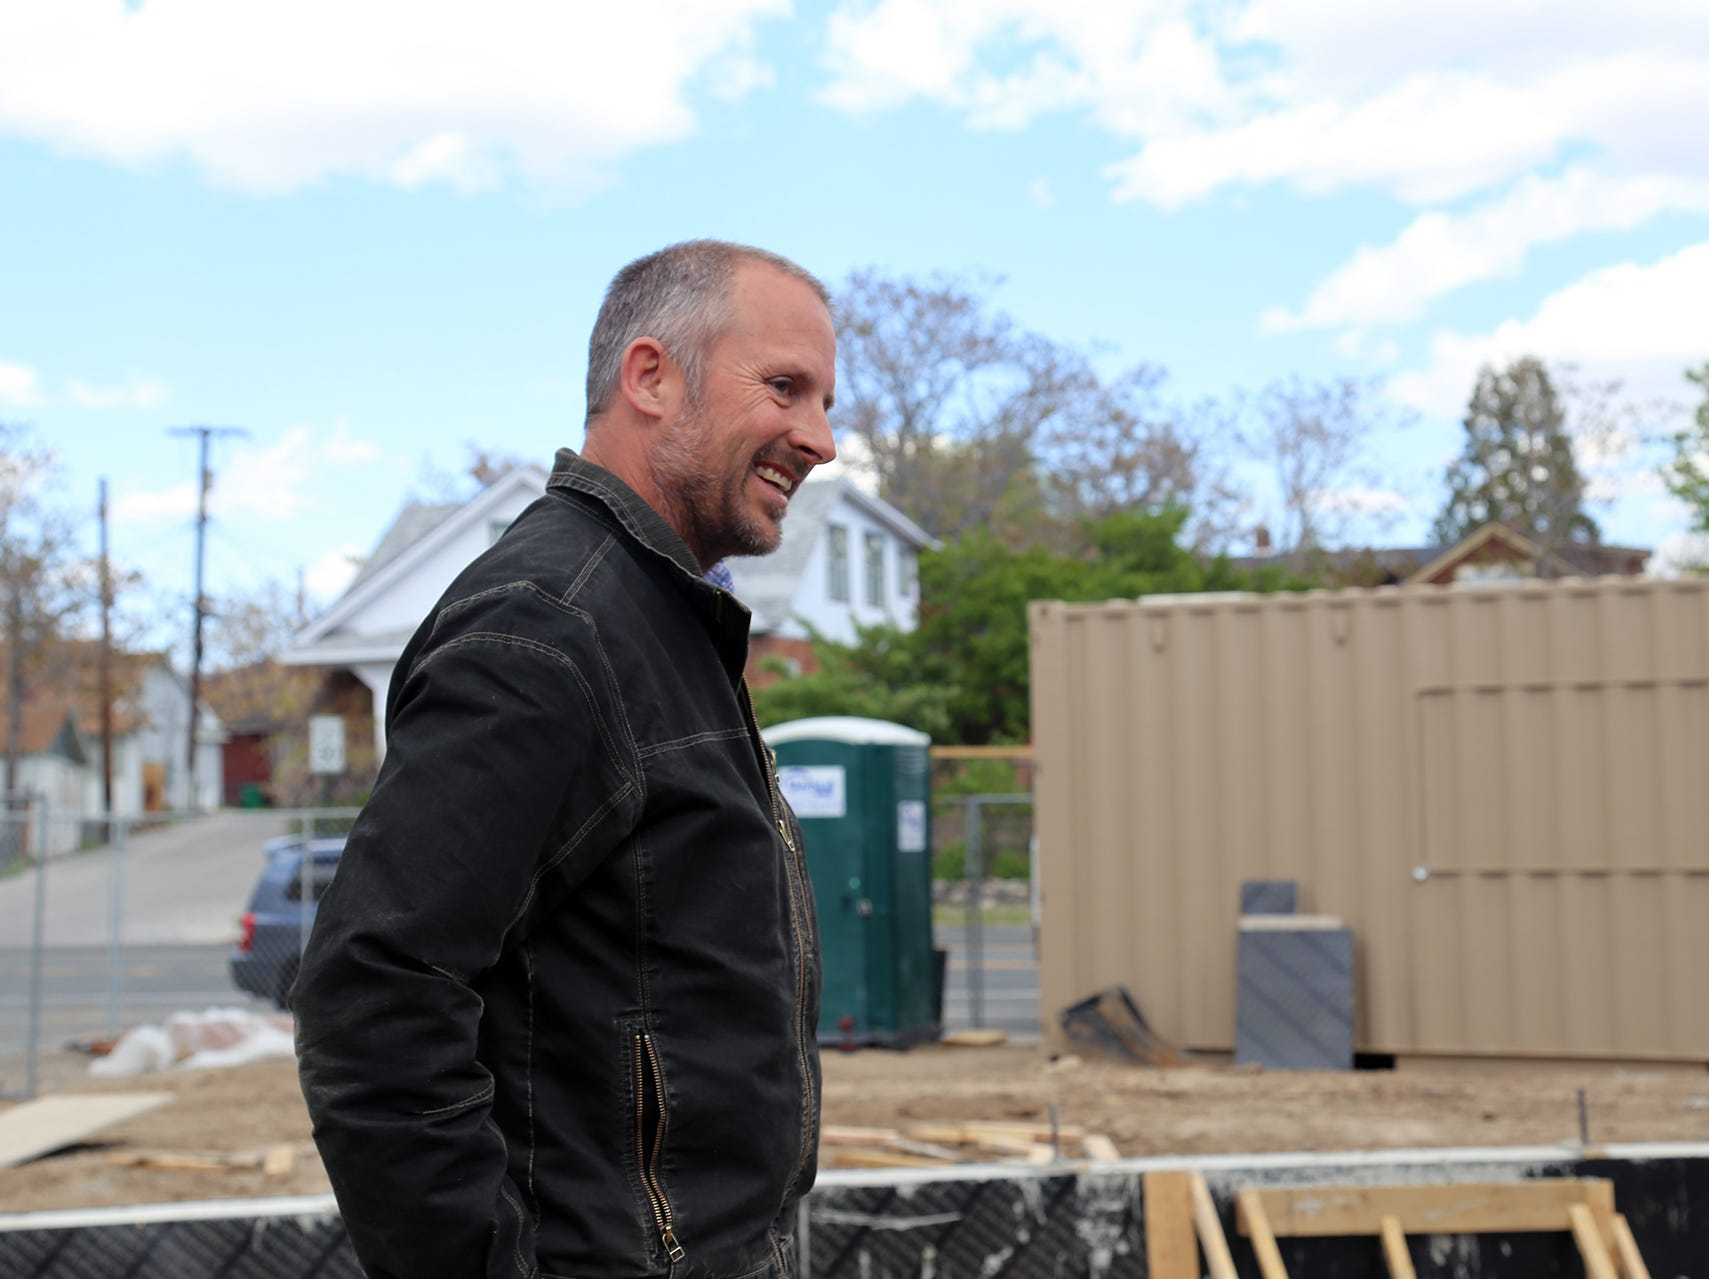 Bryan Raydon of Marmot Properties visits the site for a new shipping container apartment project at Midtown Reno on Holcomb Avenue and Moran Street on April 29, 2019.